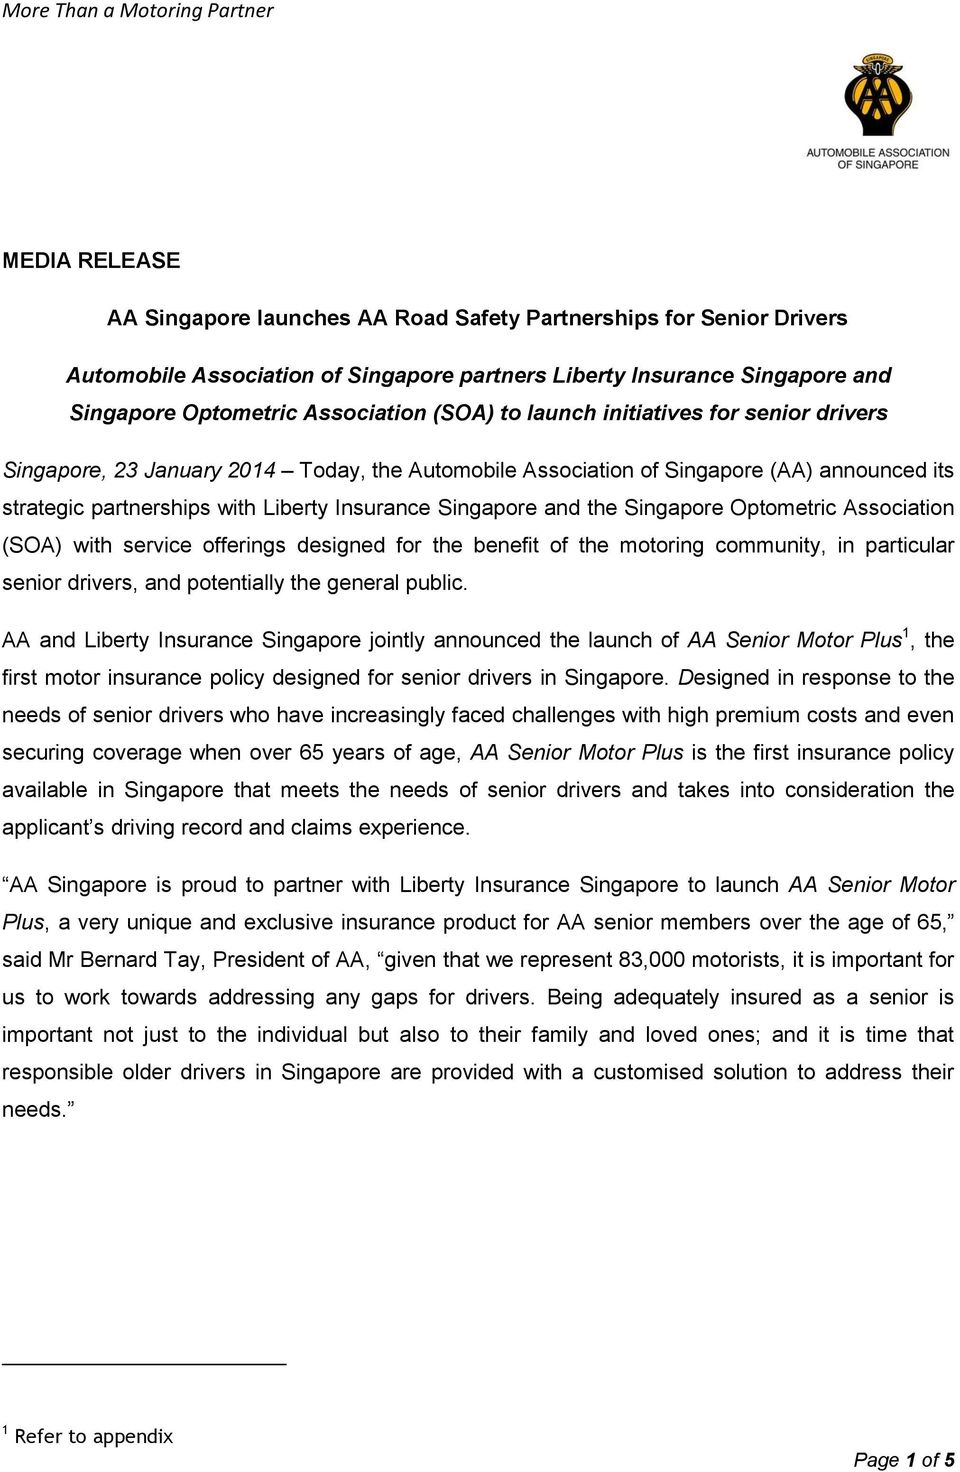 Singapore Optometric Association (SOA) with service offerings designed for the benefit of the motoring community, in particular senior drivers, and potentially the general public.